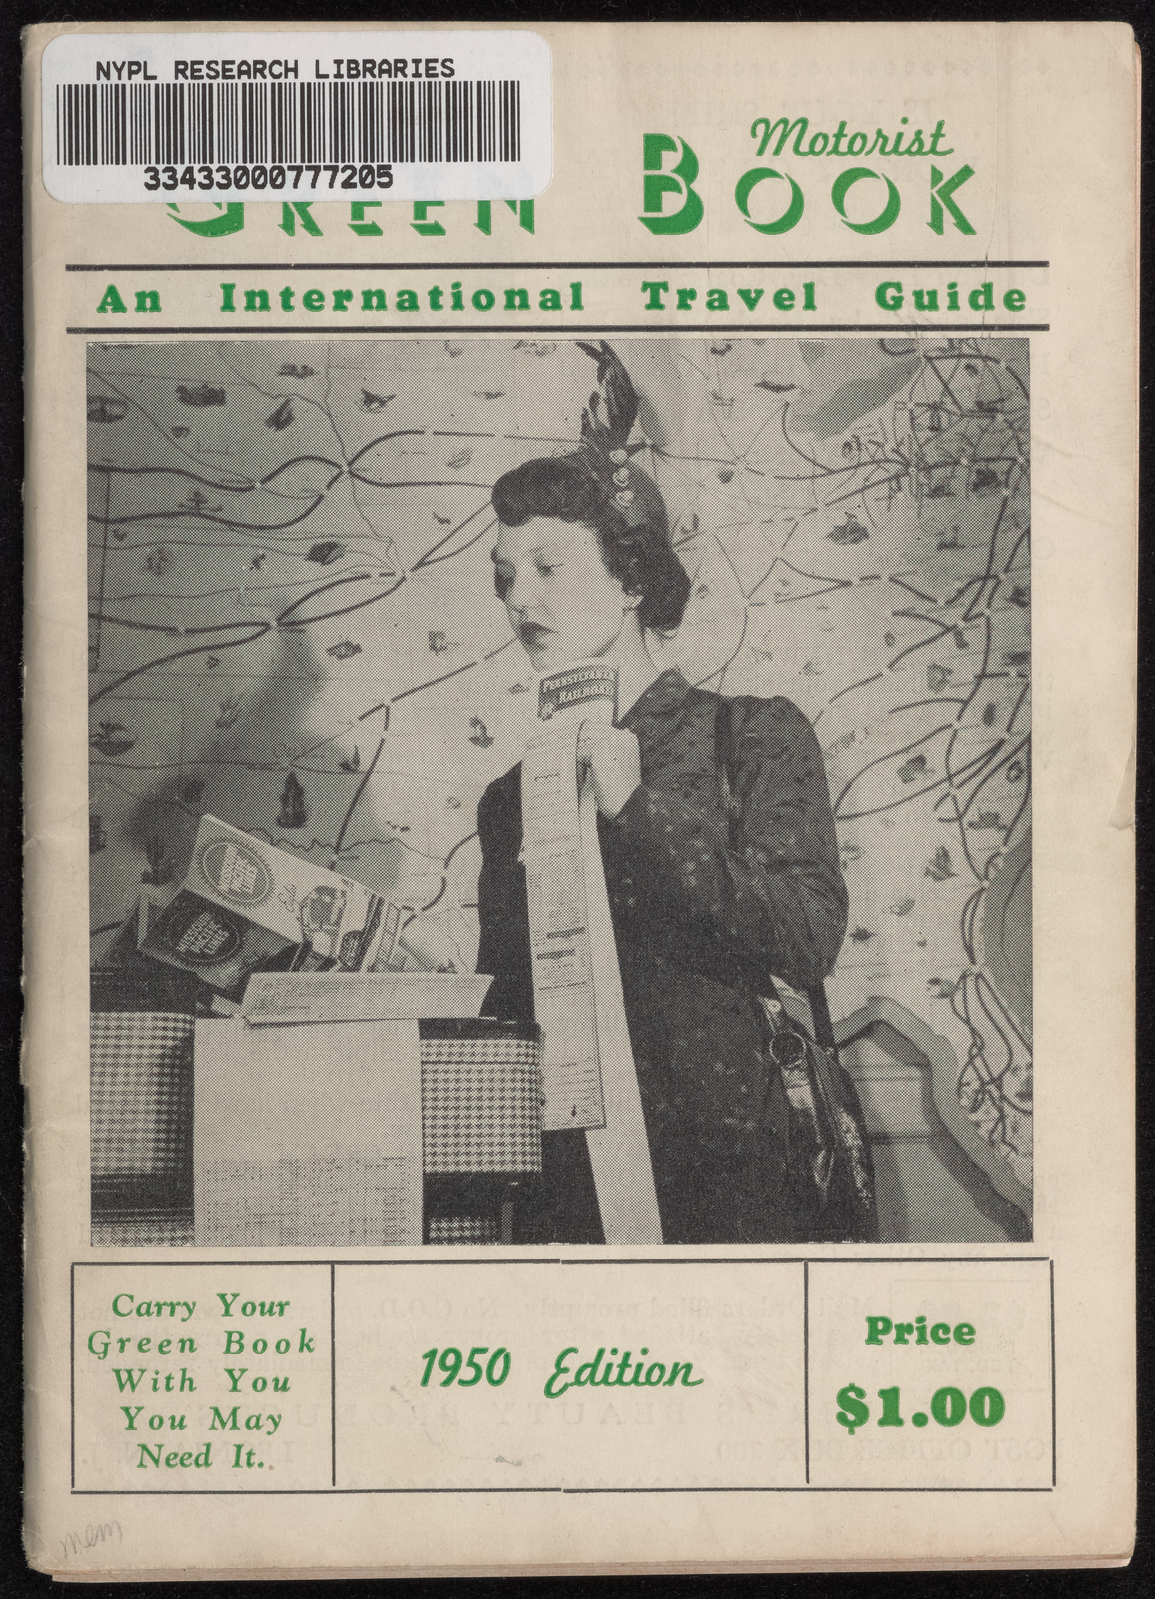 Green Book 1950 Edition Cover